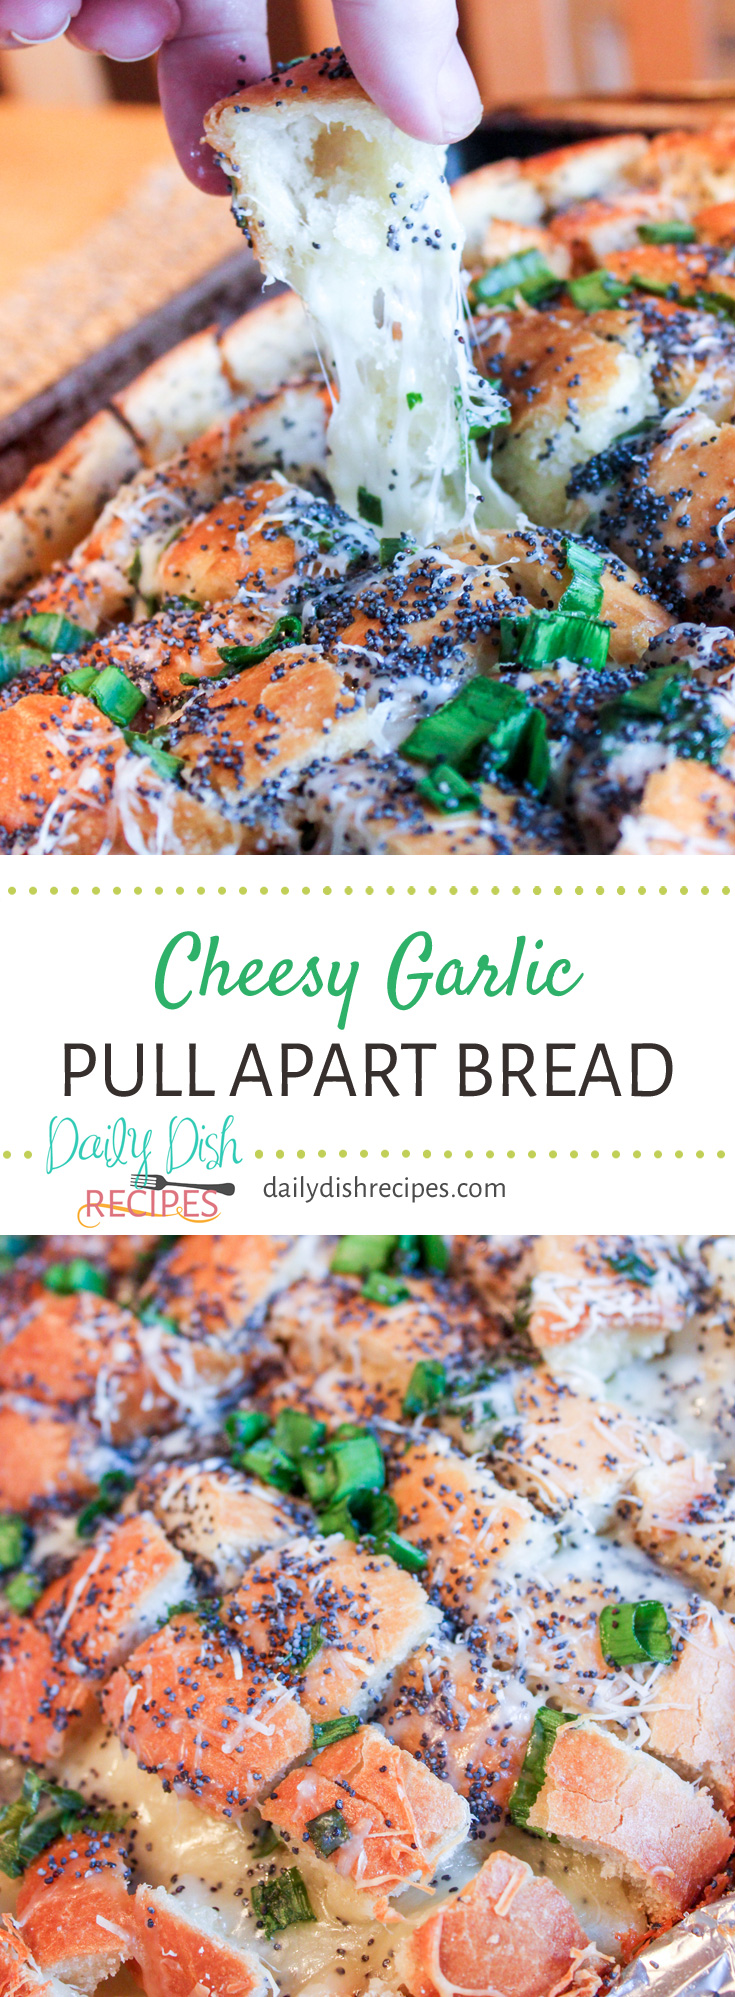 A beautiful Cheesy Garlic Pull Apart Bread - easy to make, tastes like a burst of heaven in your mouth and goes great at even the most elegant event. Melted buttery cheese between slices of Italian bread topped with green onions and poppy seeds. Add herbs with the cheese.